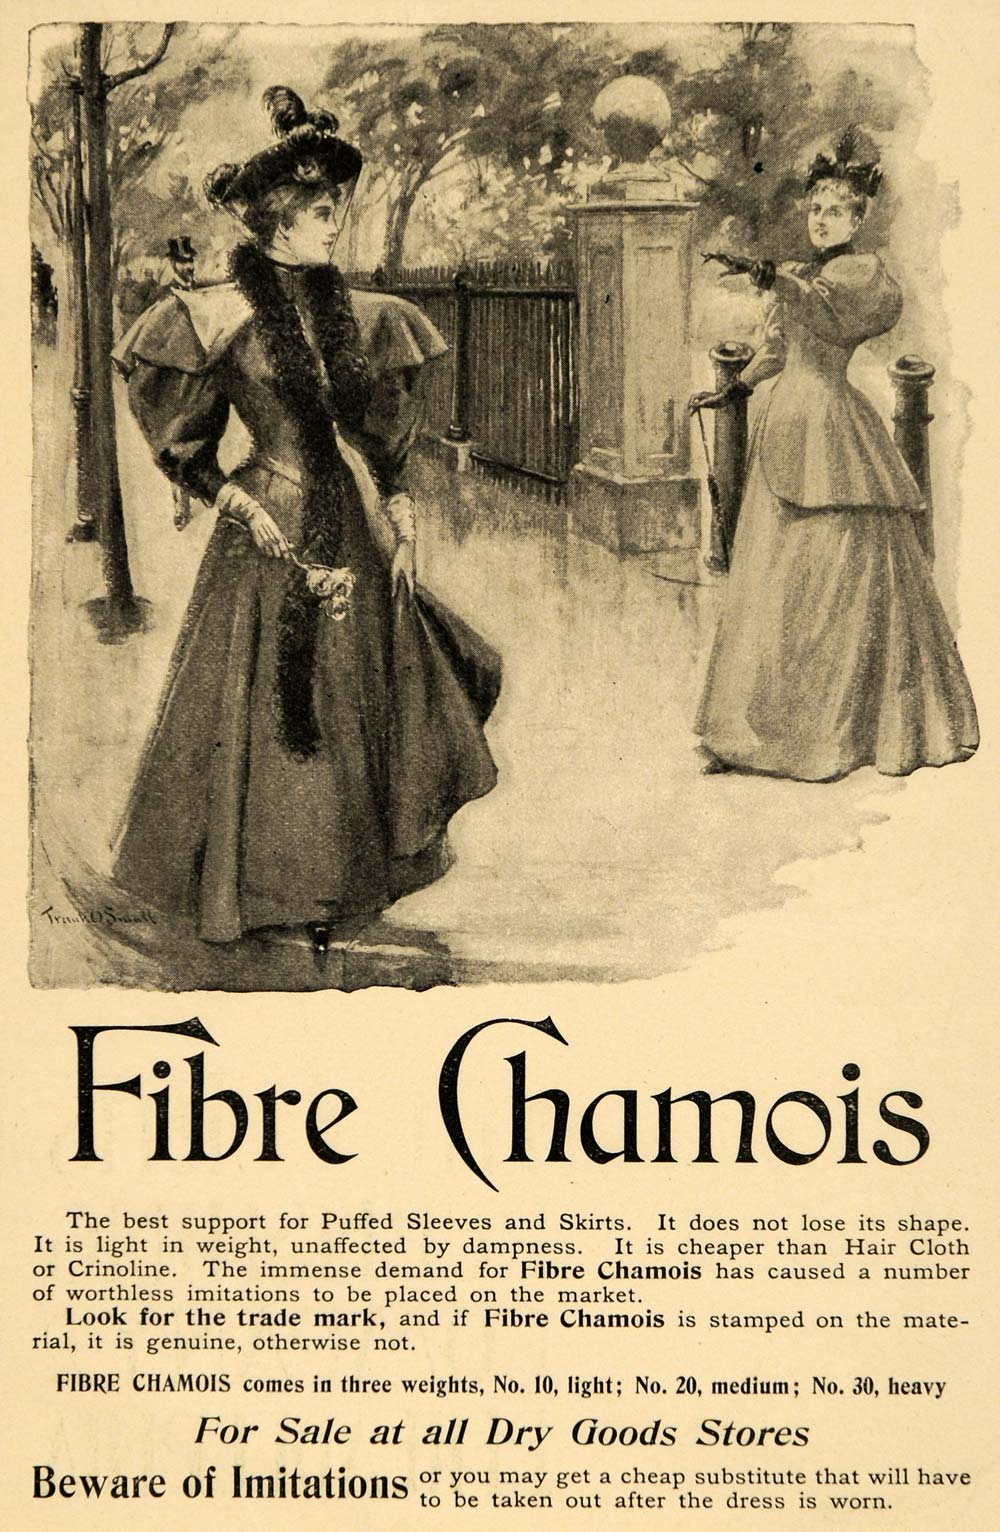 1895 Ad Fibre Chamois Puffed Sleeves Skirts Fabrics - ORIGINAL ADVERTISING LHJ4